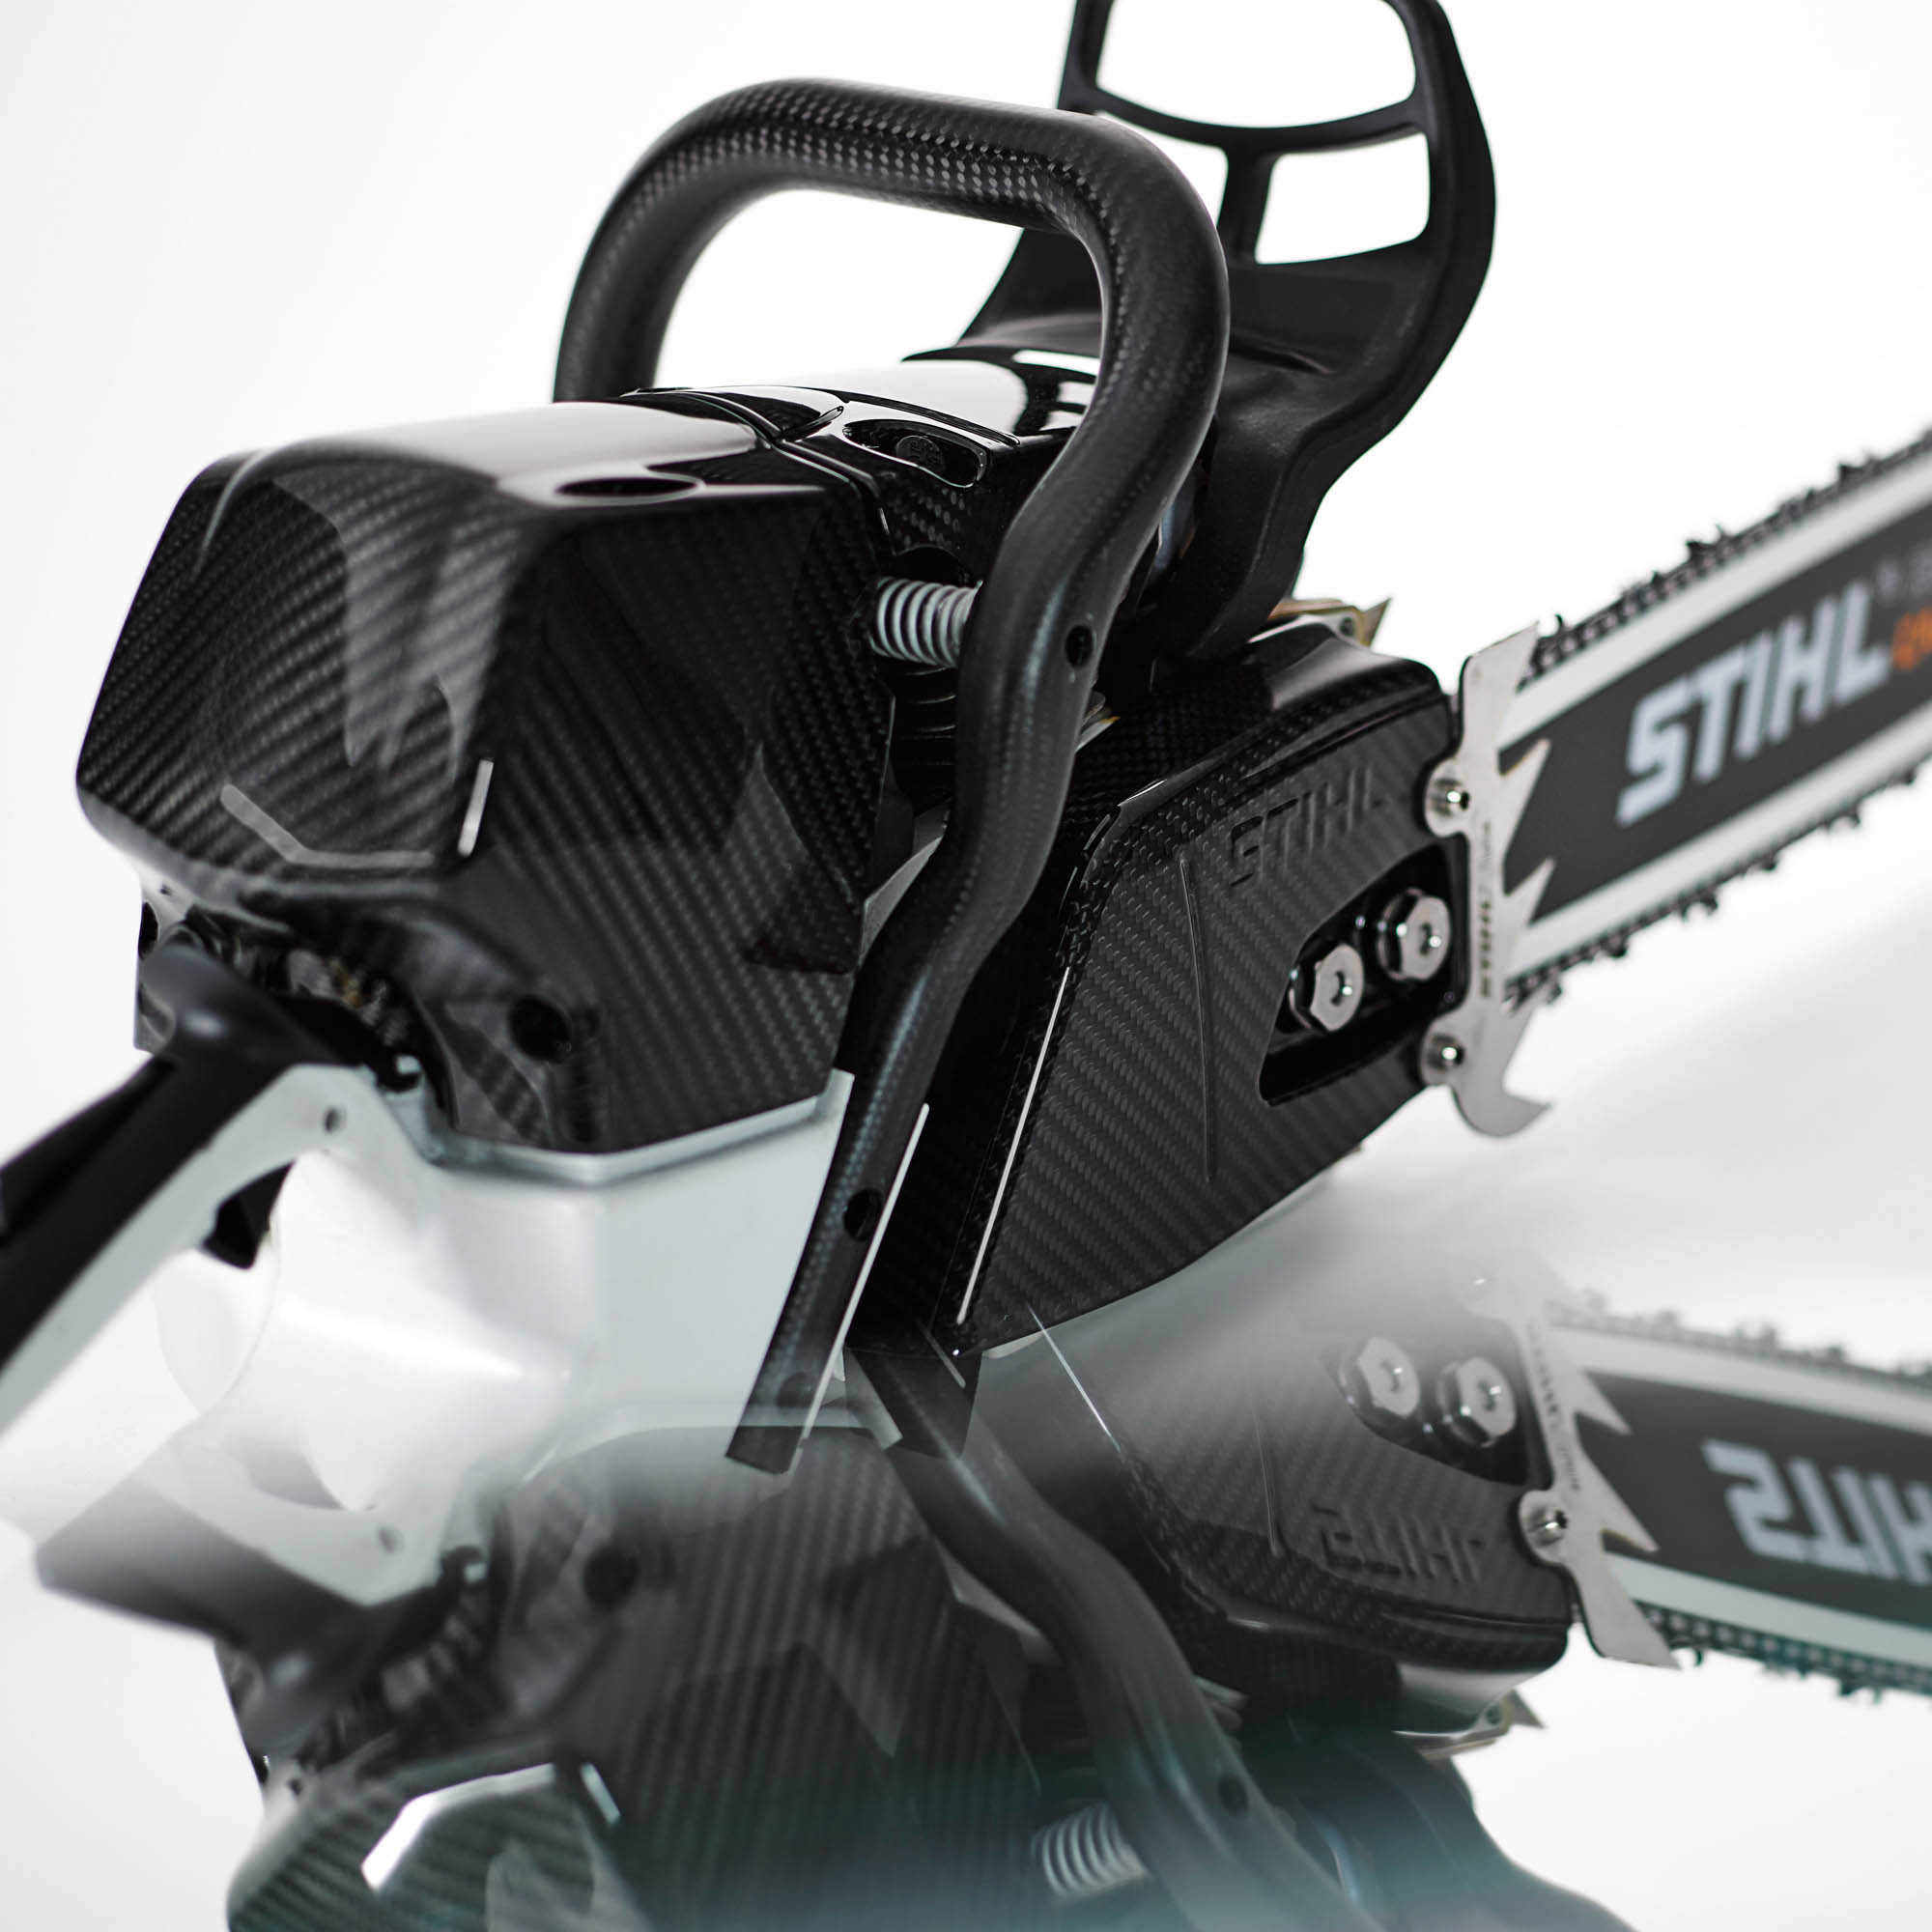 Carbon 2991 - Stihl: Dokumentation innovativer Produktentwicklungen